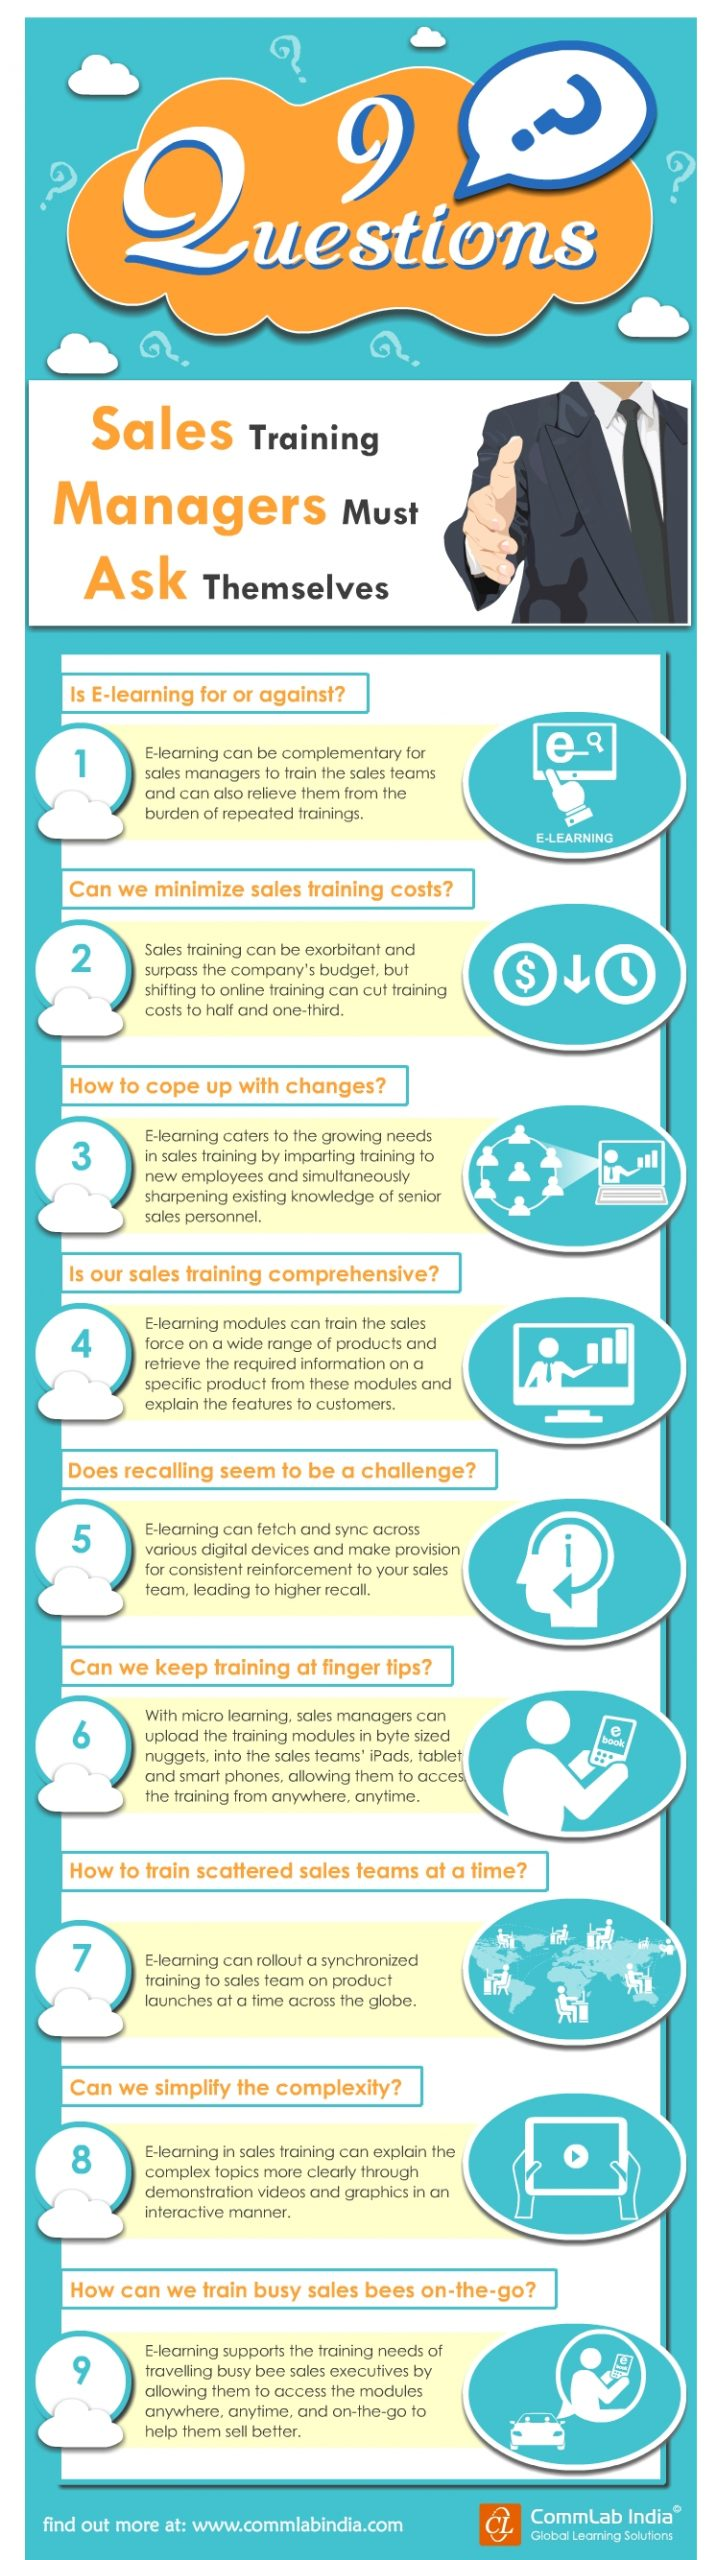 Questions sales training managers must ask themselves